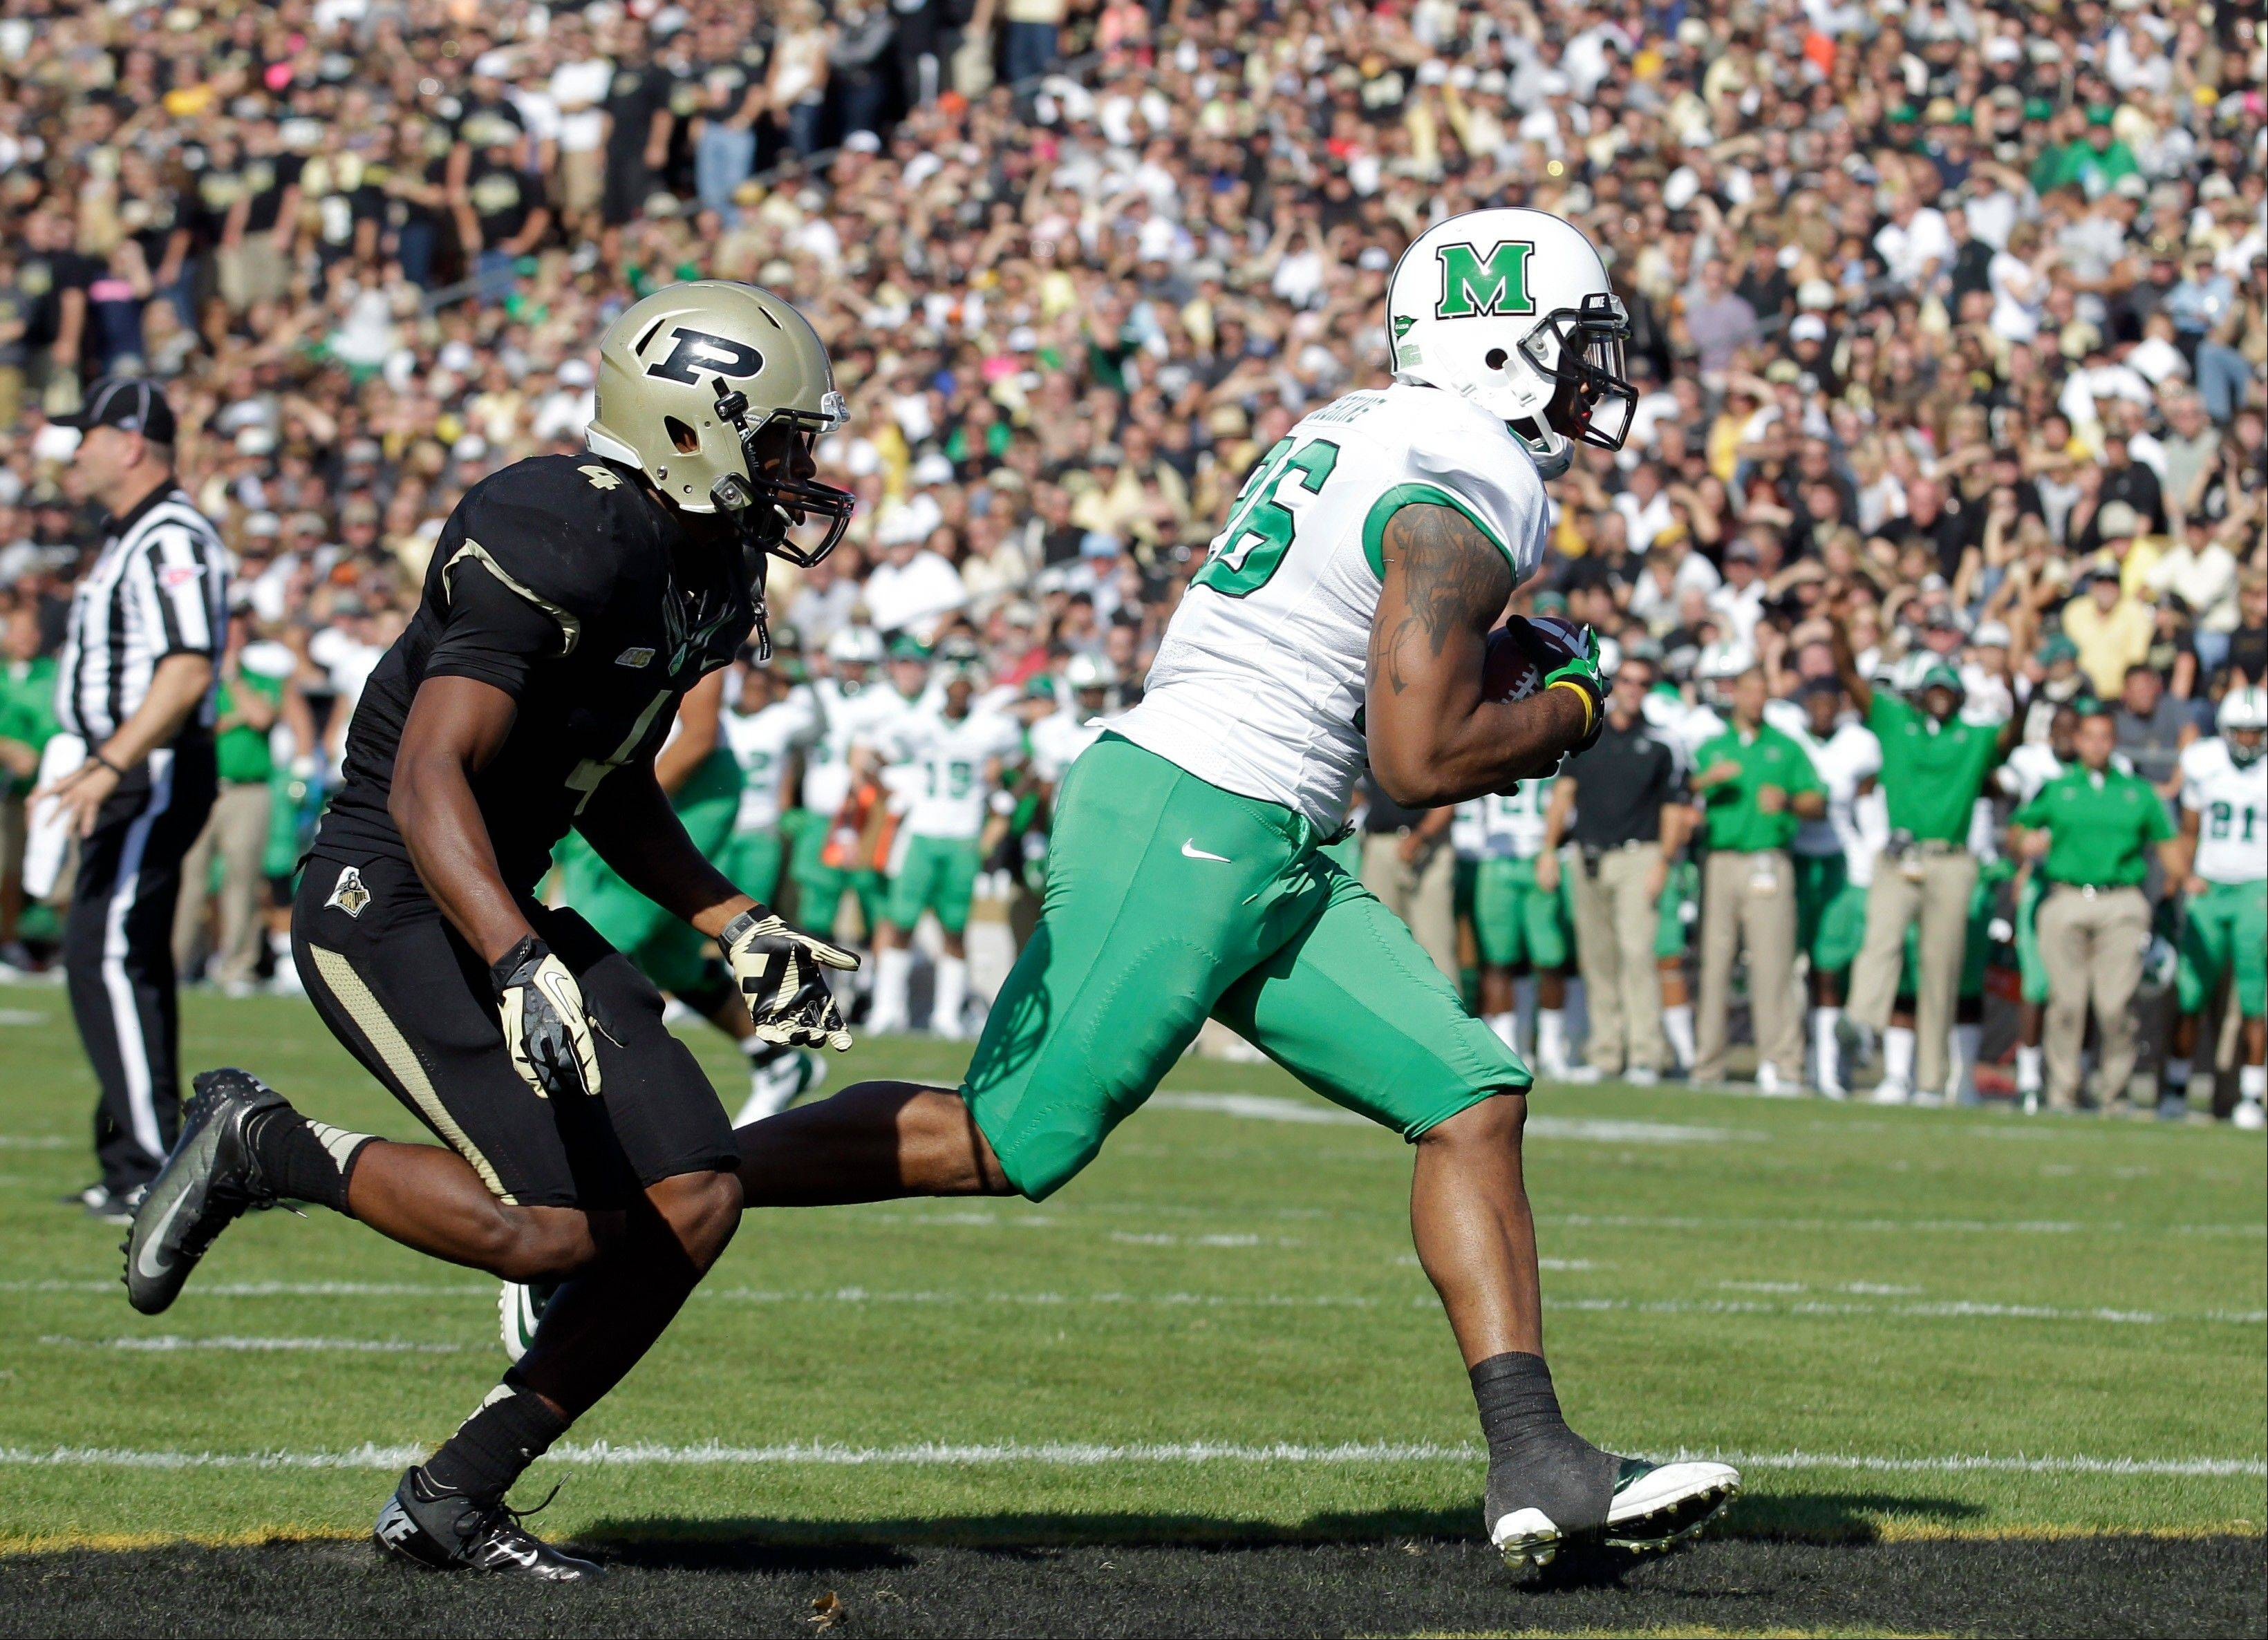 Marshall tight end Gator Hoskins, right, scores a touchdown on a 12-yard pass in front of Purdue defensive back Taylor Richards Saturday during the first half in West Lafayette, Ind.